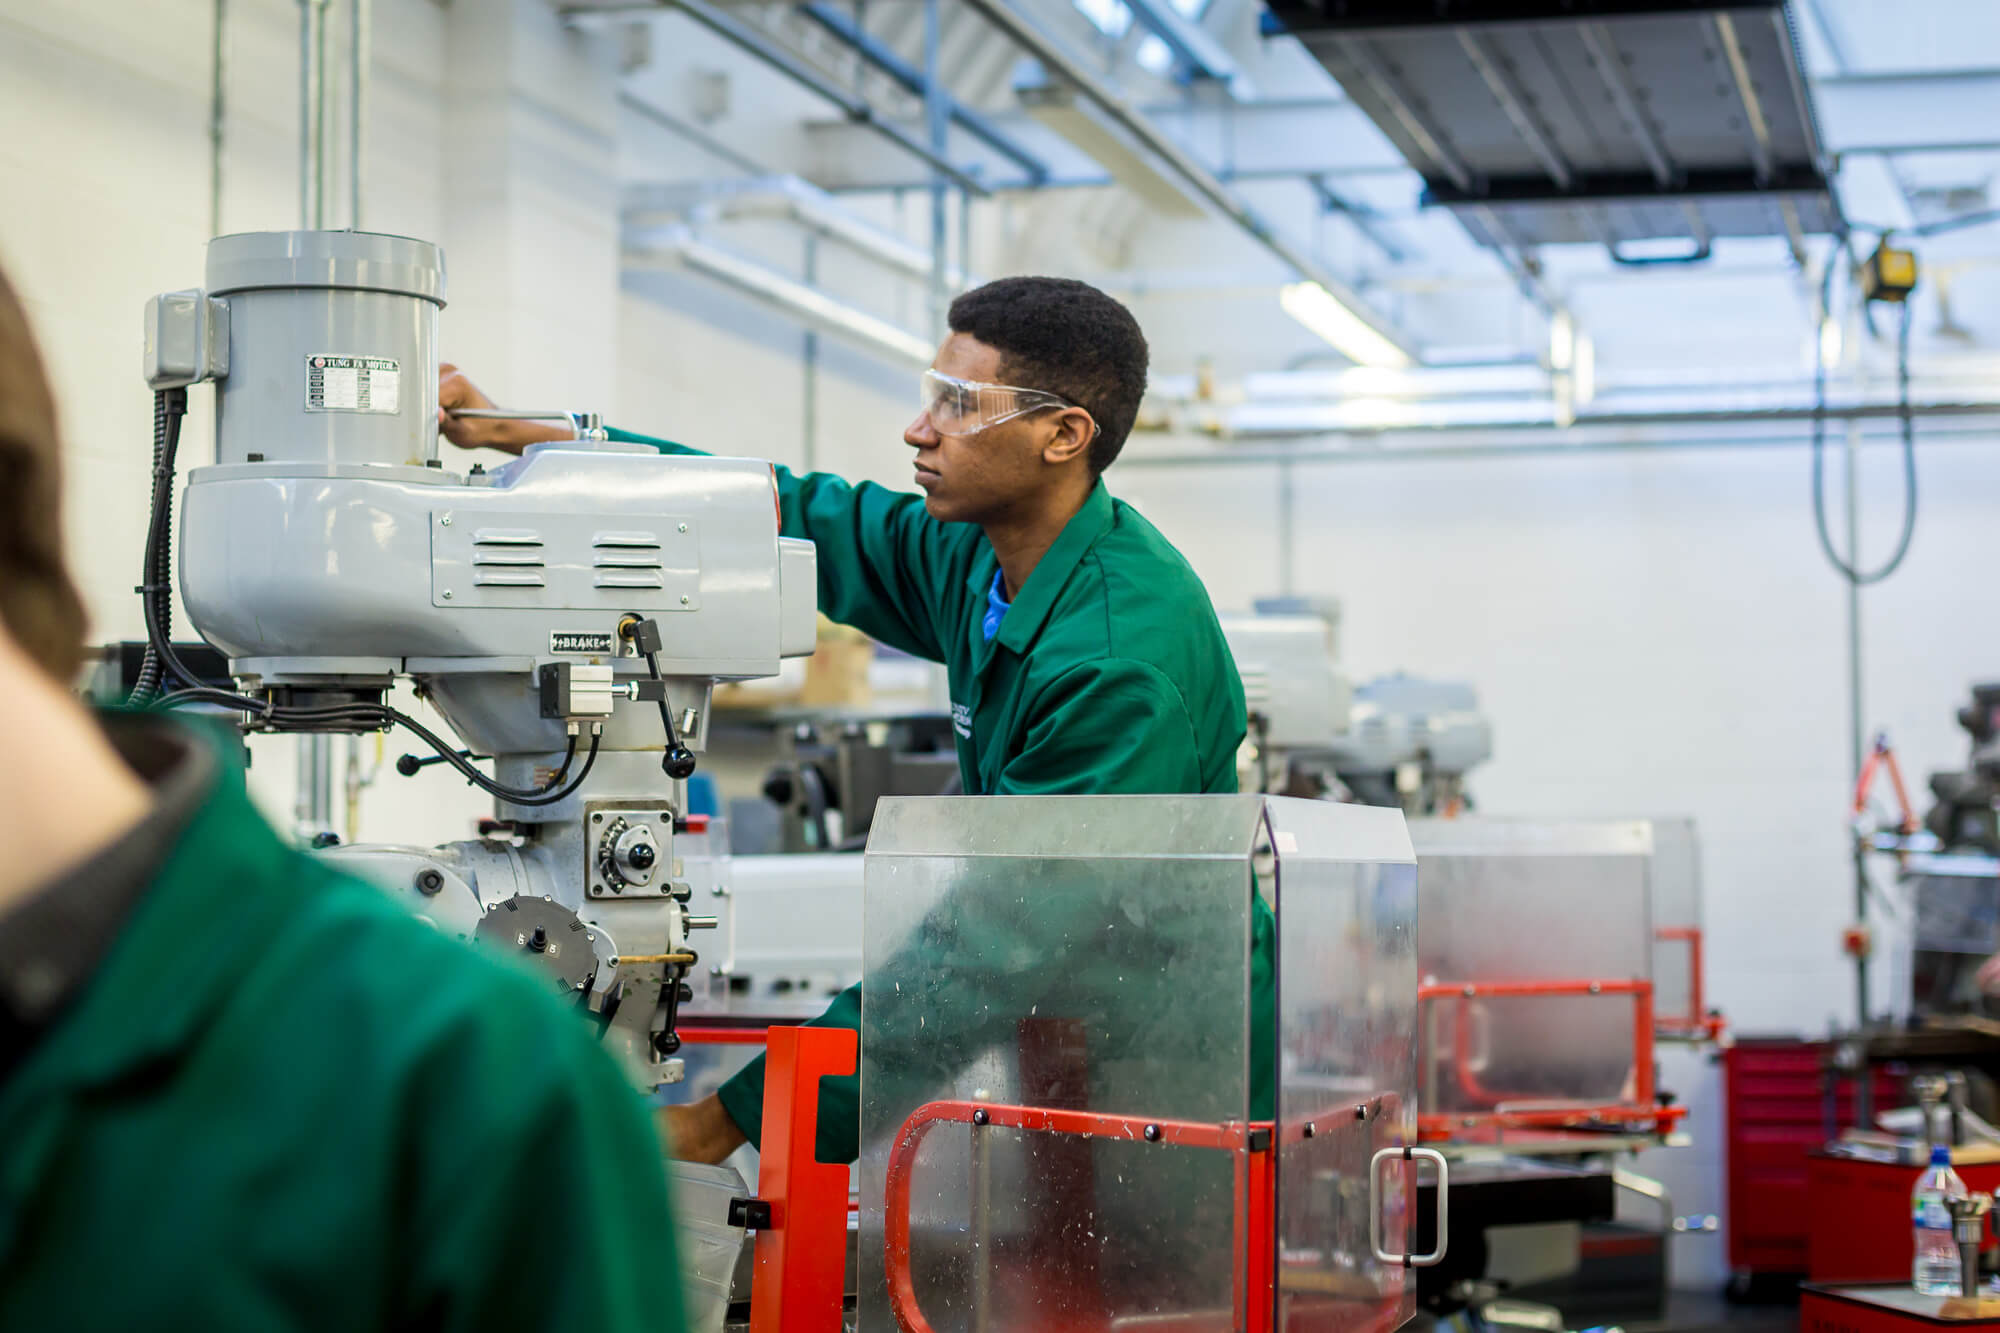 A Mechanical Engineering student using a lathe in the workshop